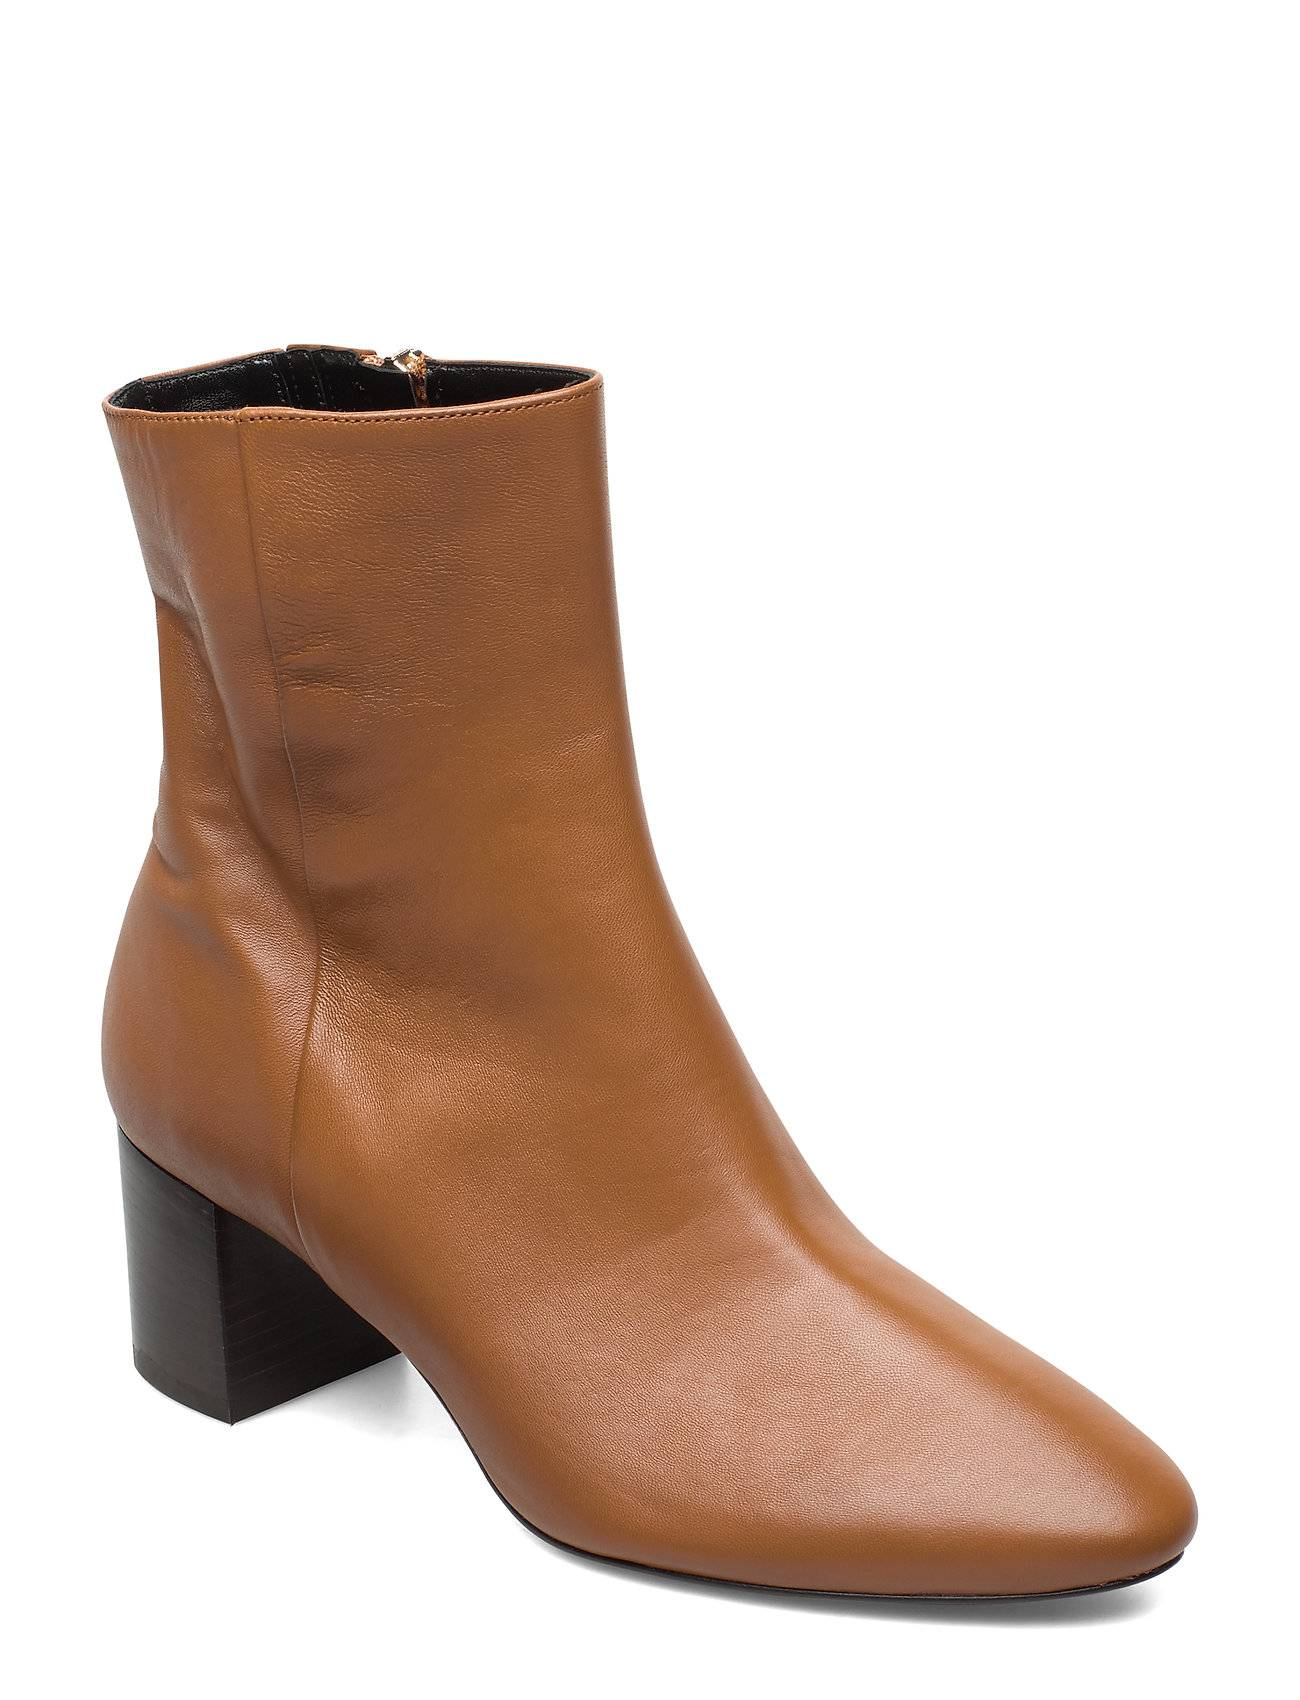 Apair Plan Low Rounded Bootie Shoes Boots Ankle Boots Ankle Boots With Heel Ruskea Apair